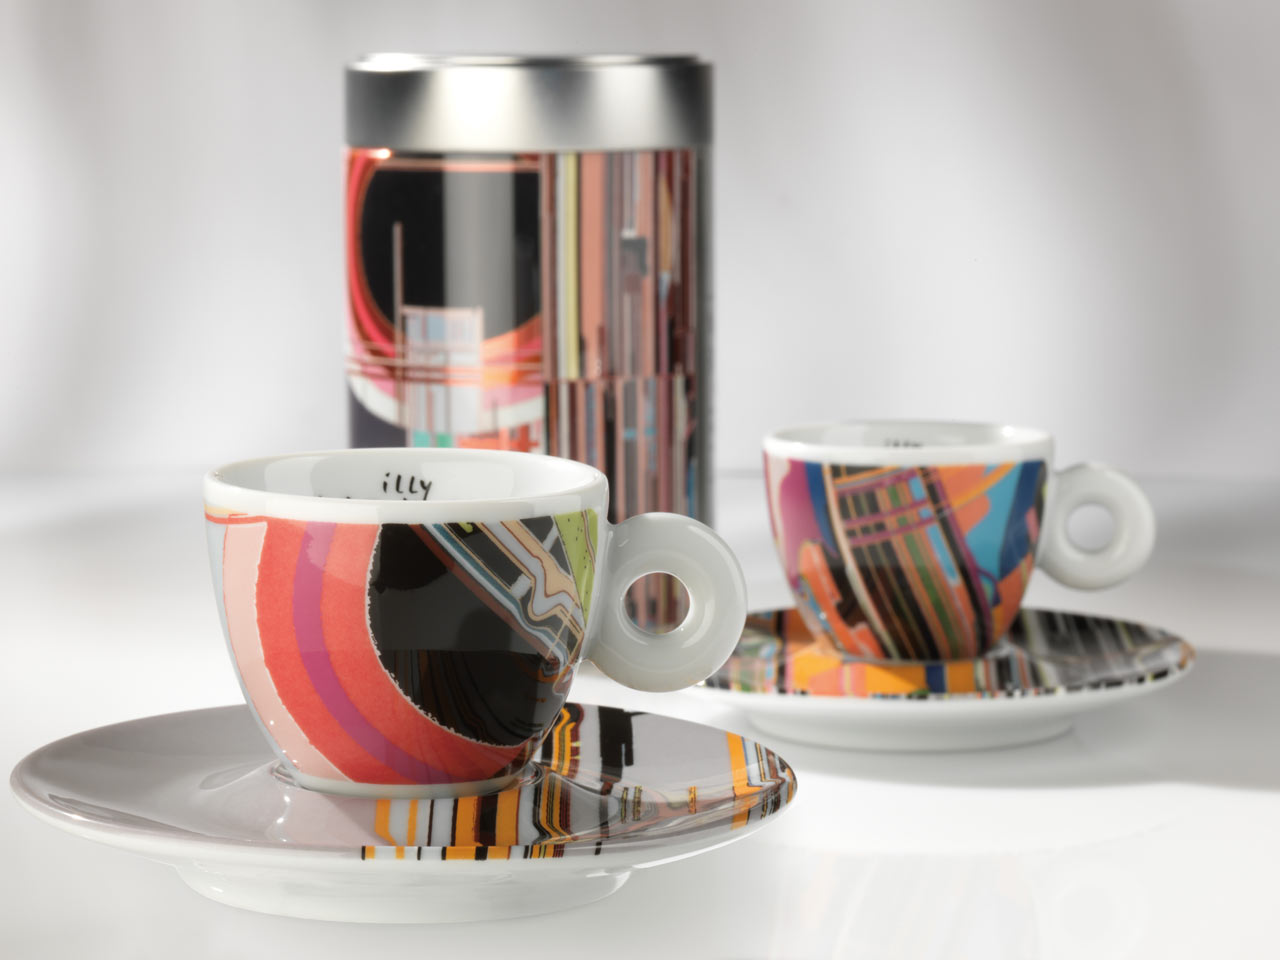 The Latest illy Art Collection Project: Artist Liu Wei